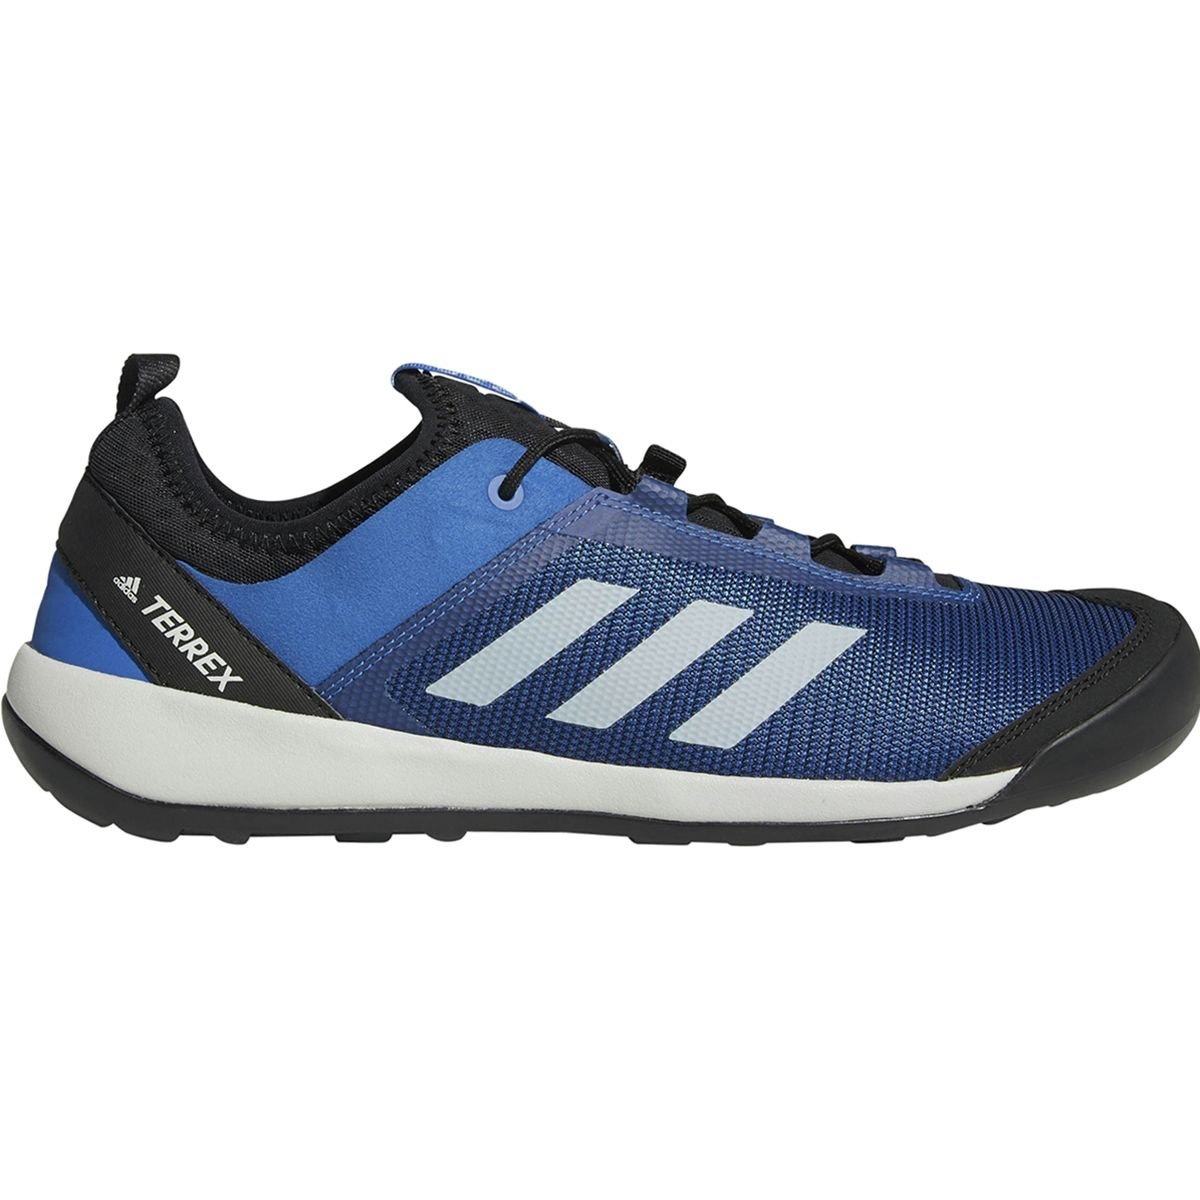 7a6a7d216a92c adidas outdoor Men's Terrex Swift Solo Blue Beauty/Grey One/Bright Blue  10.5 D US